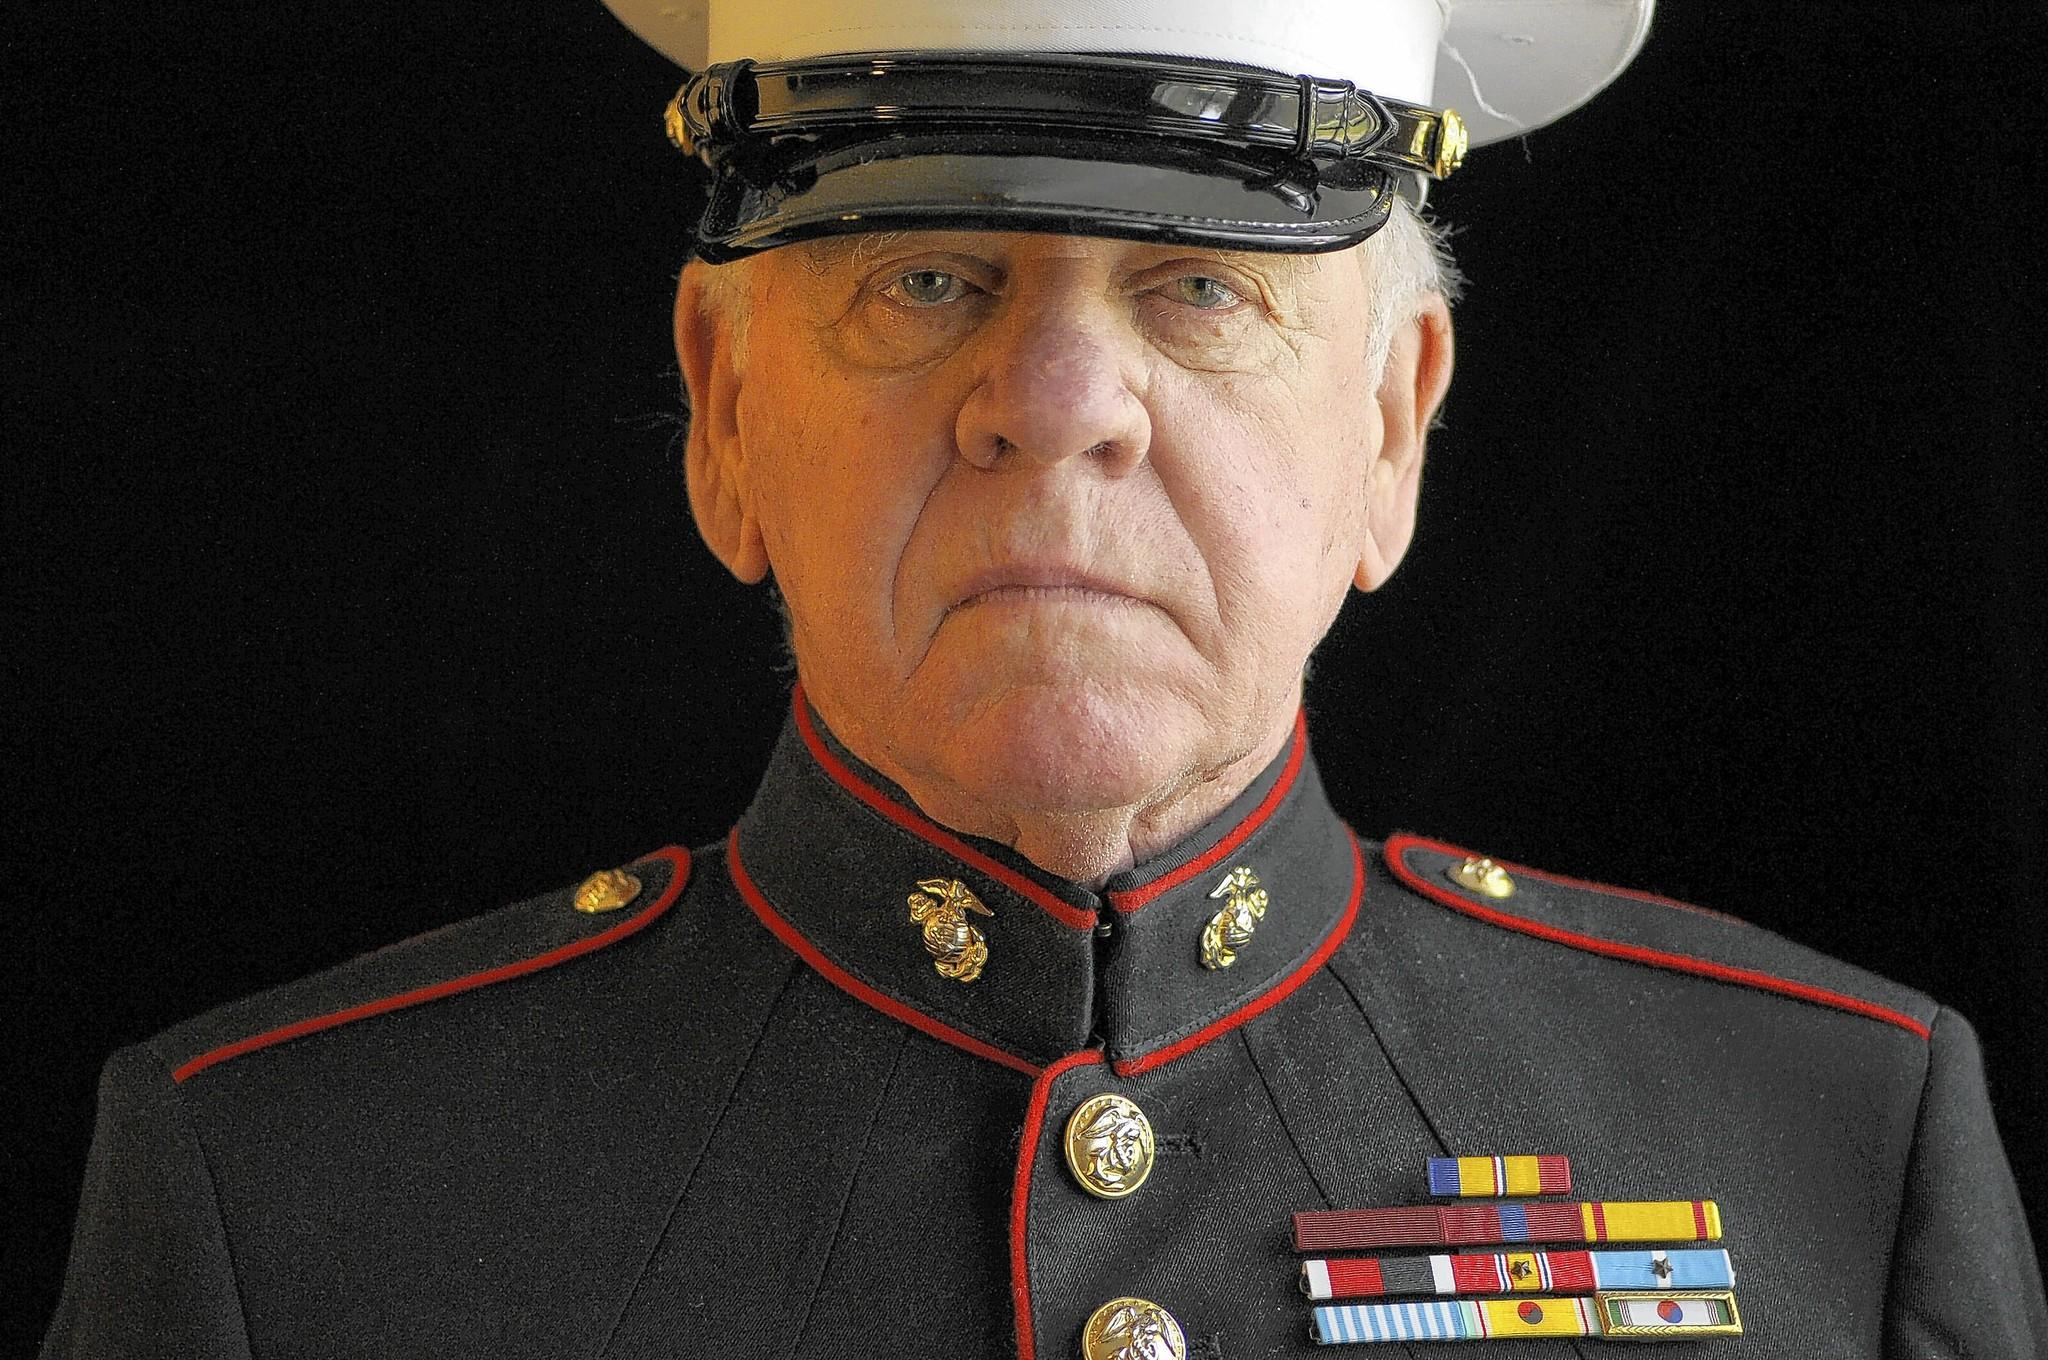 Robert Kalechman, 81, served as a Marine Corps sergeant during the Korean War. Kalechman has also served on the board of trustees for the state's Department of Veteran Affairs and he currently hosts a program on Simsbury cable television about the Marines.